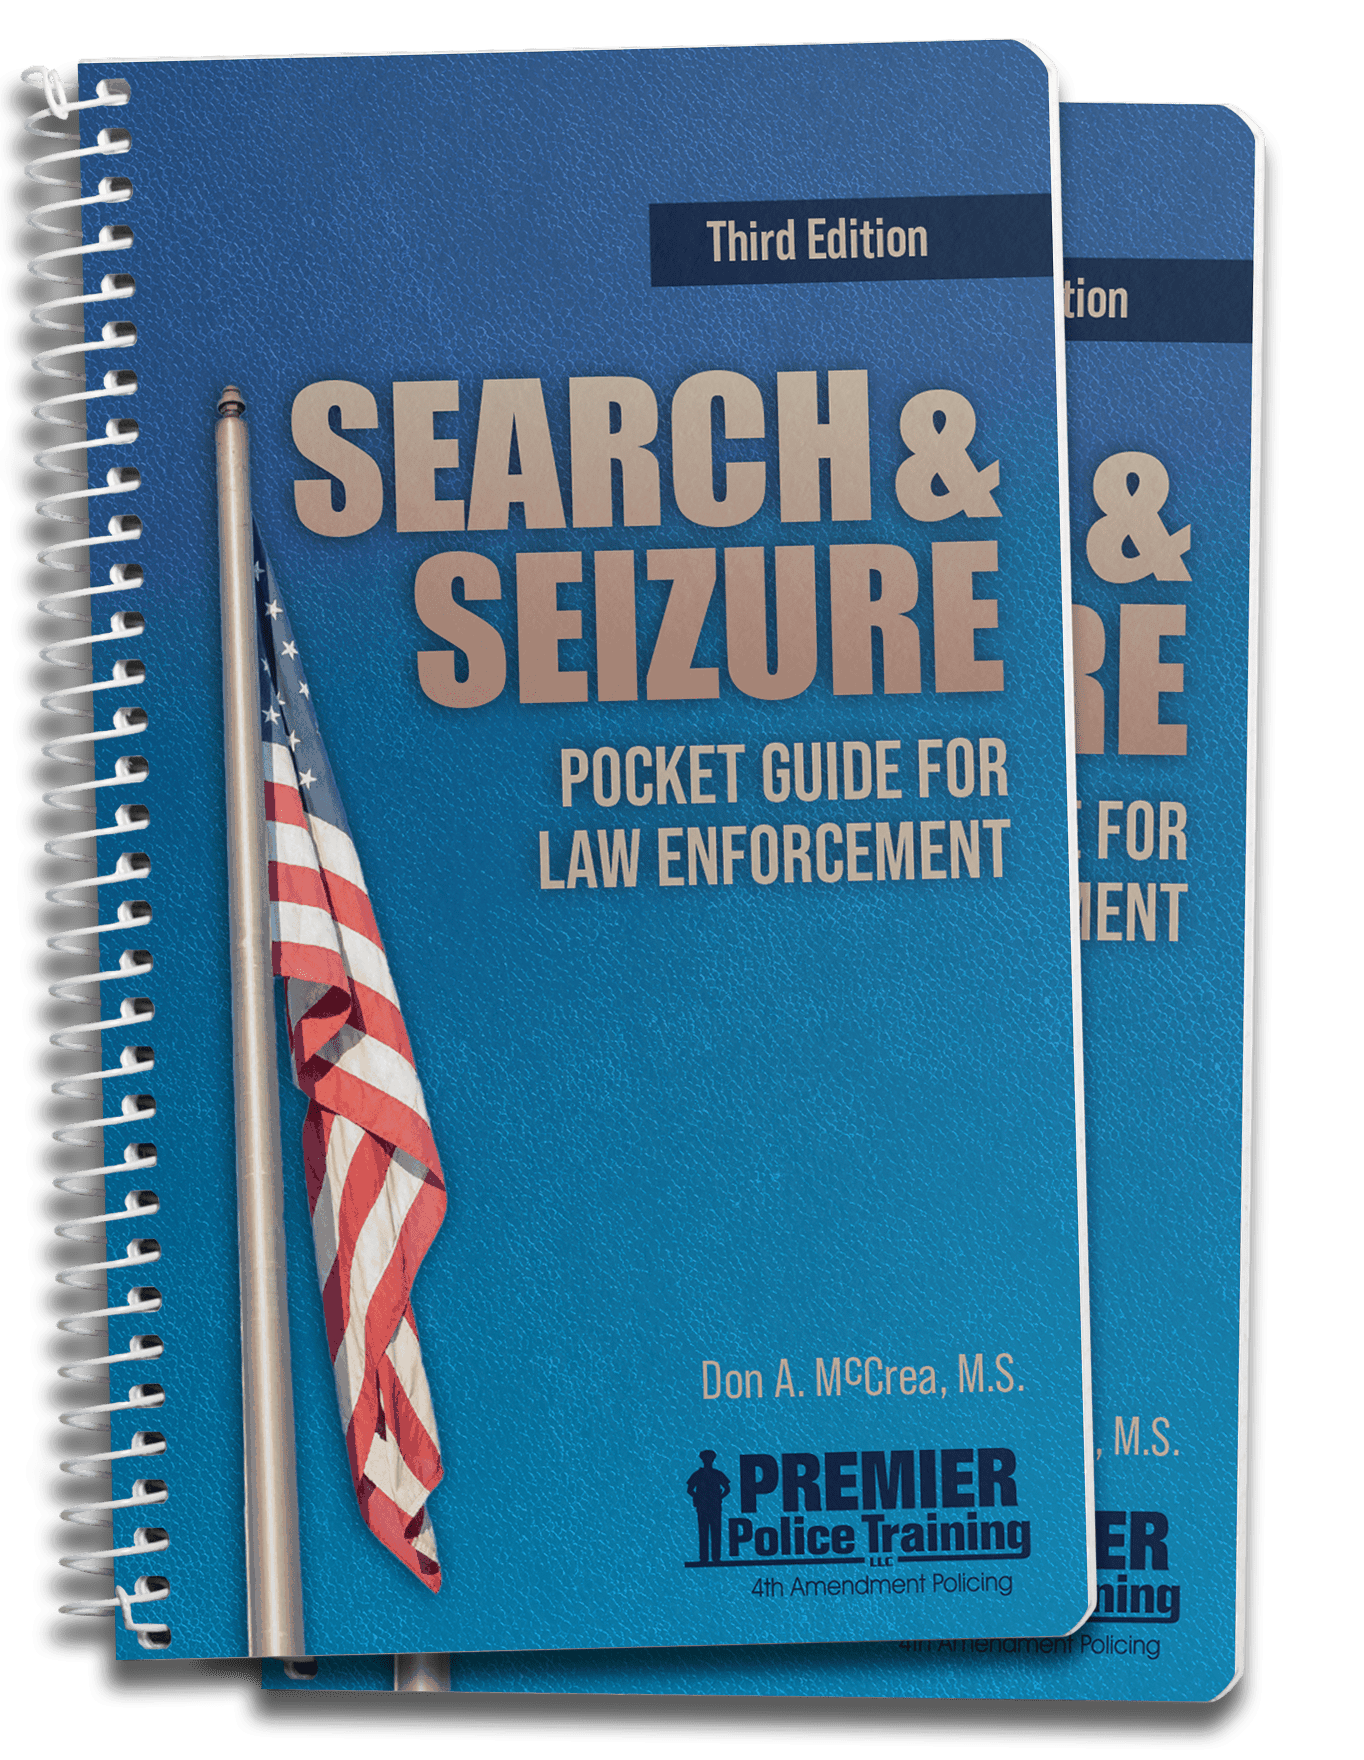 Search and Seizure Pocket Guide - Premier Police Training